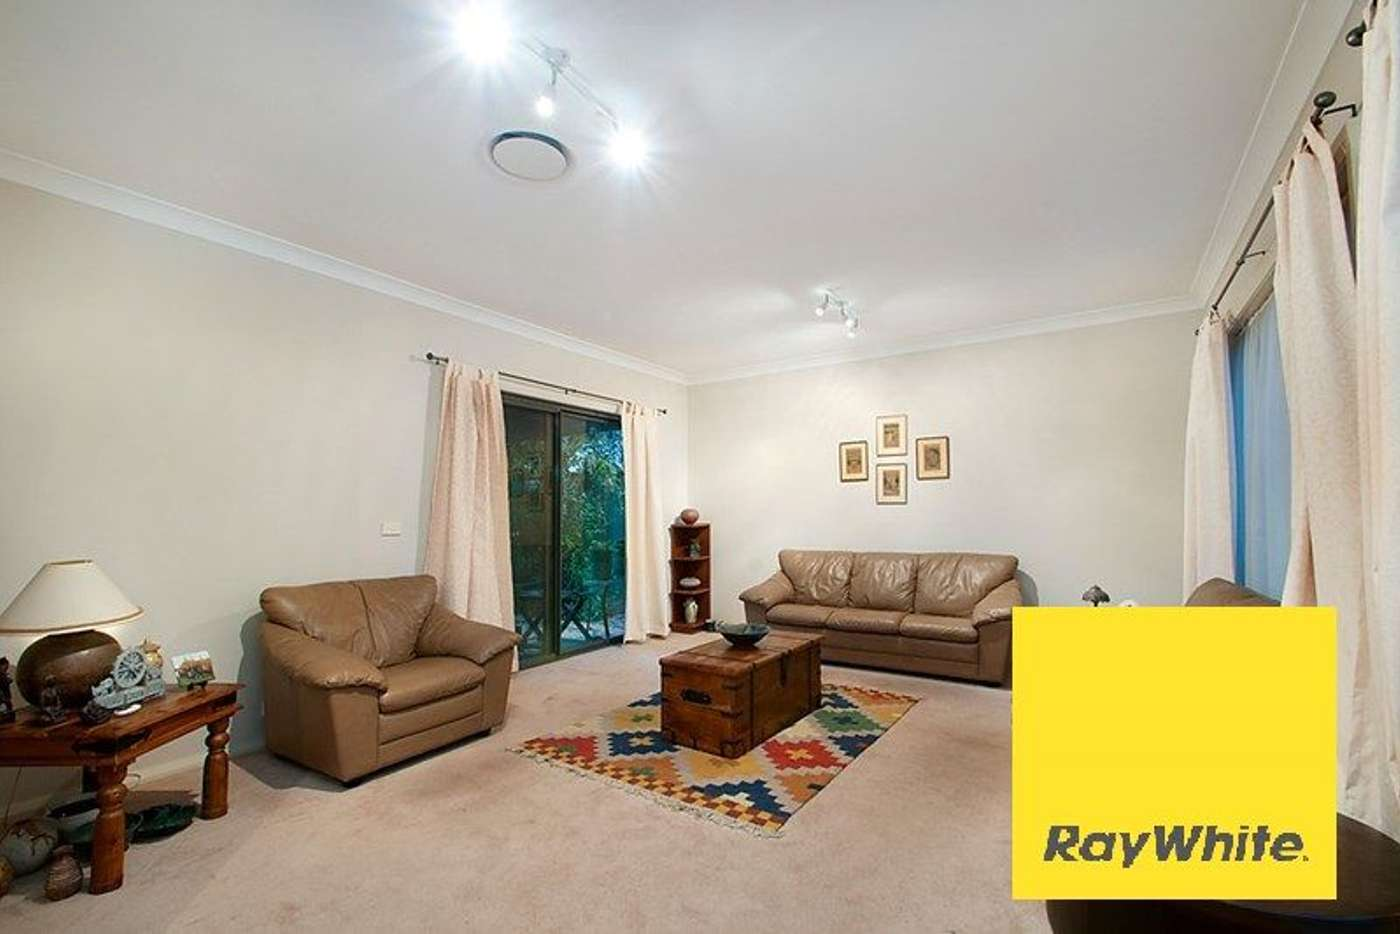 Sixth view of Homely house listing, 21 Newbury Avenue, Stanhope Gardens NSW 2768